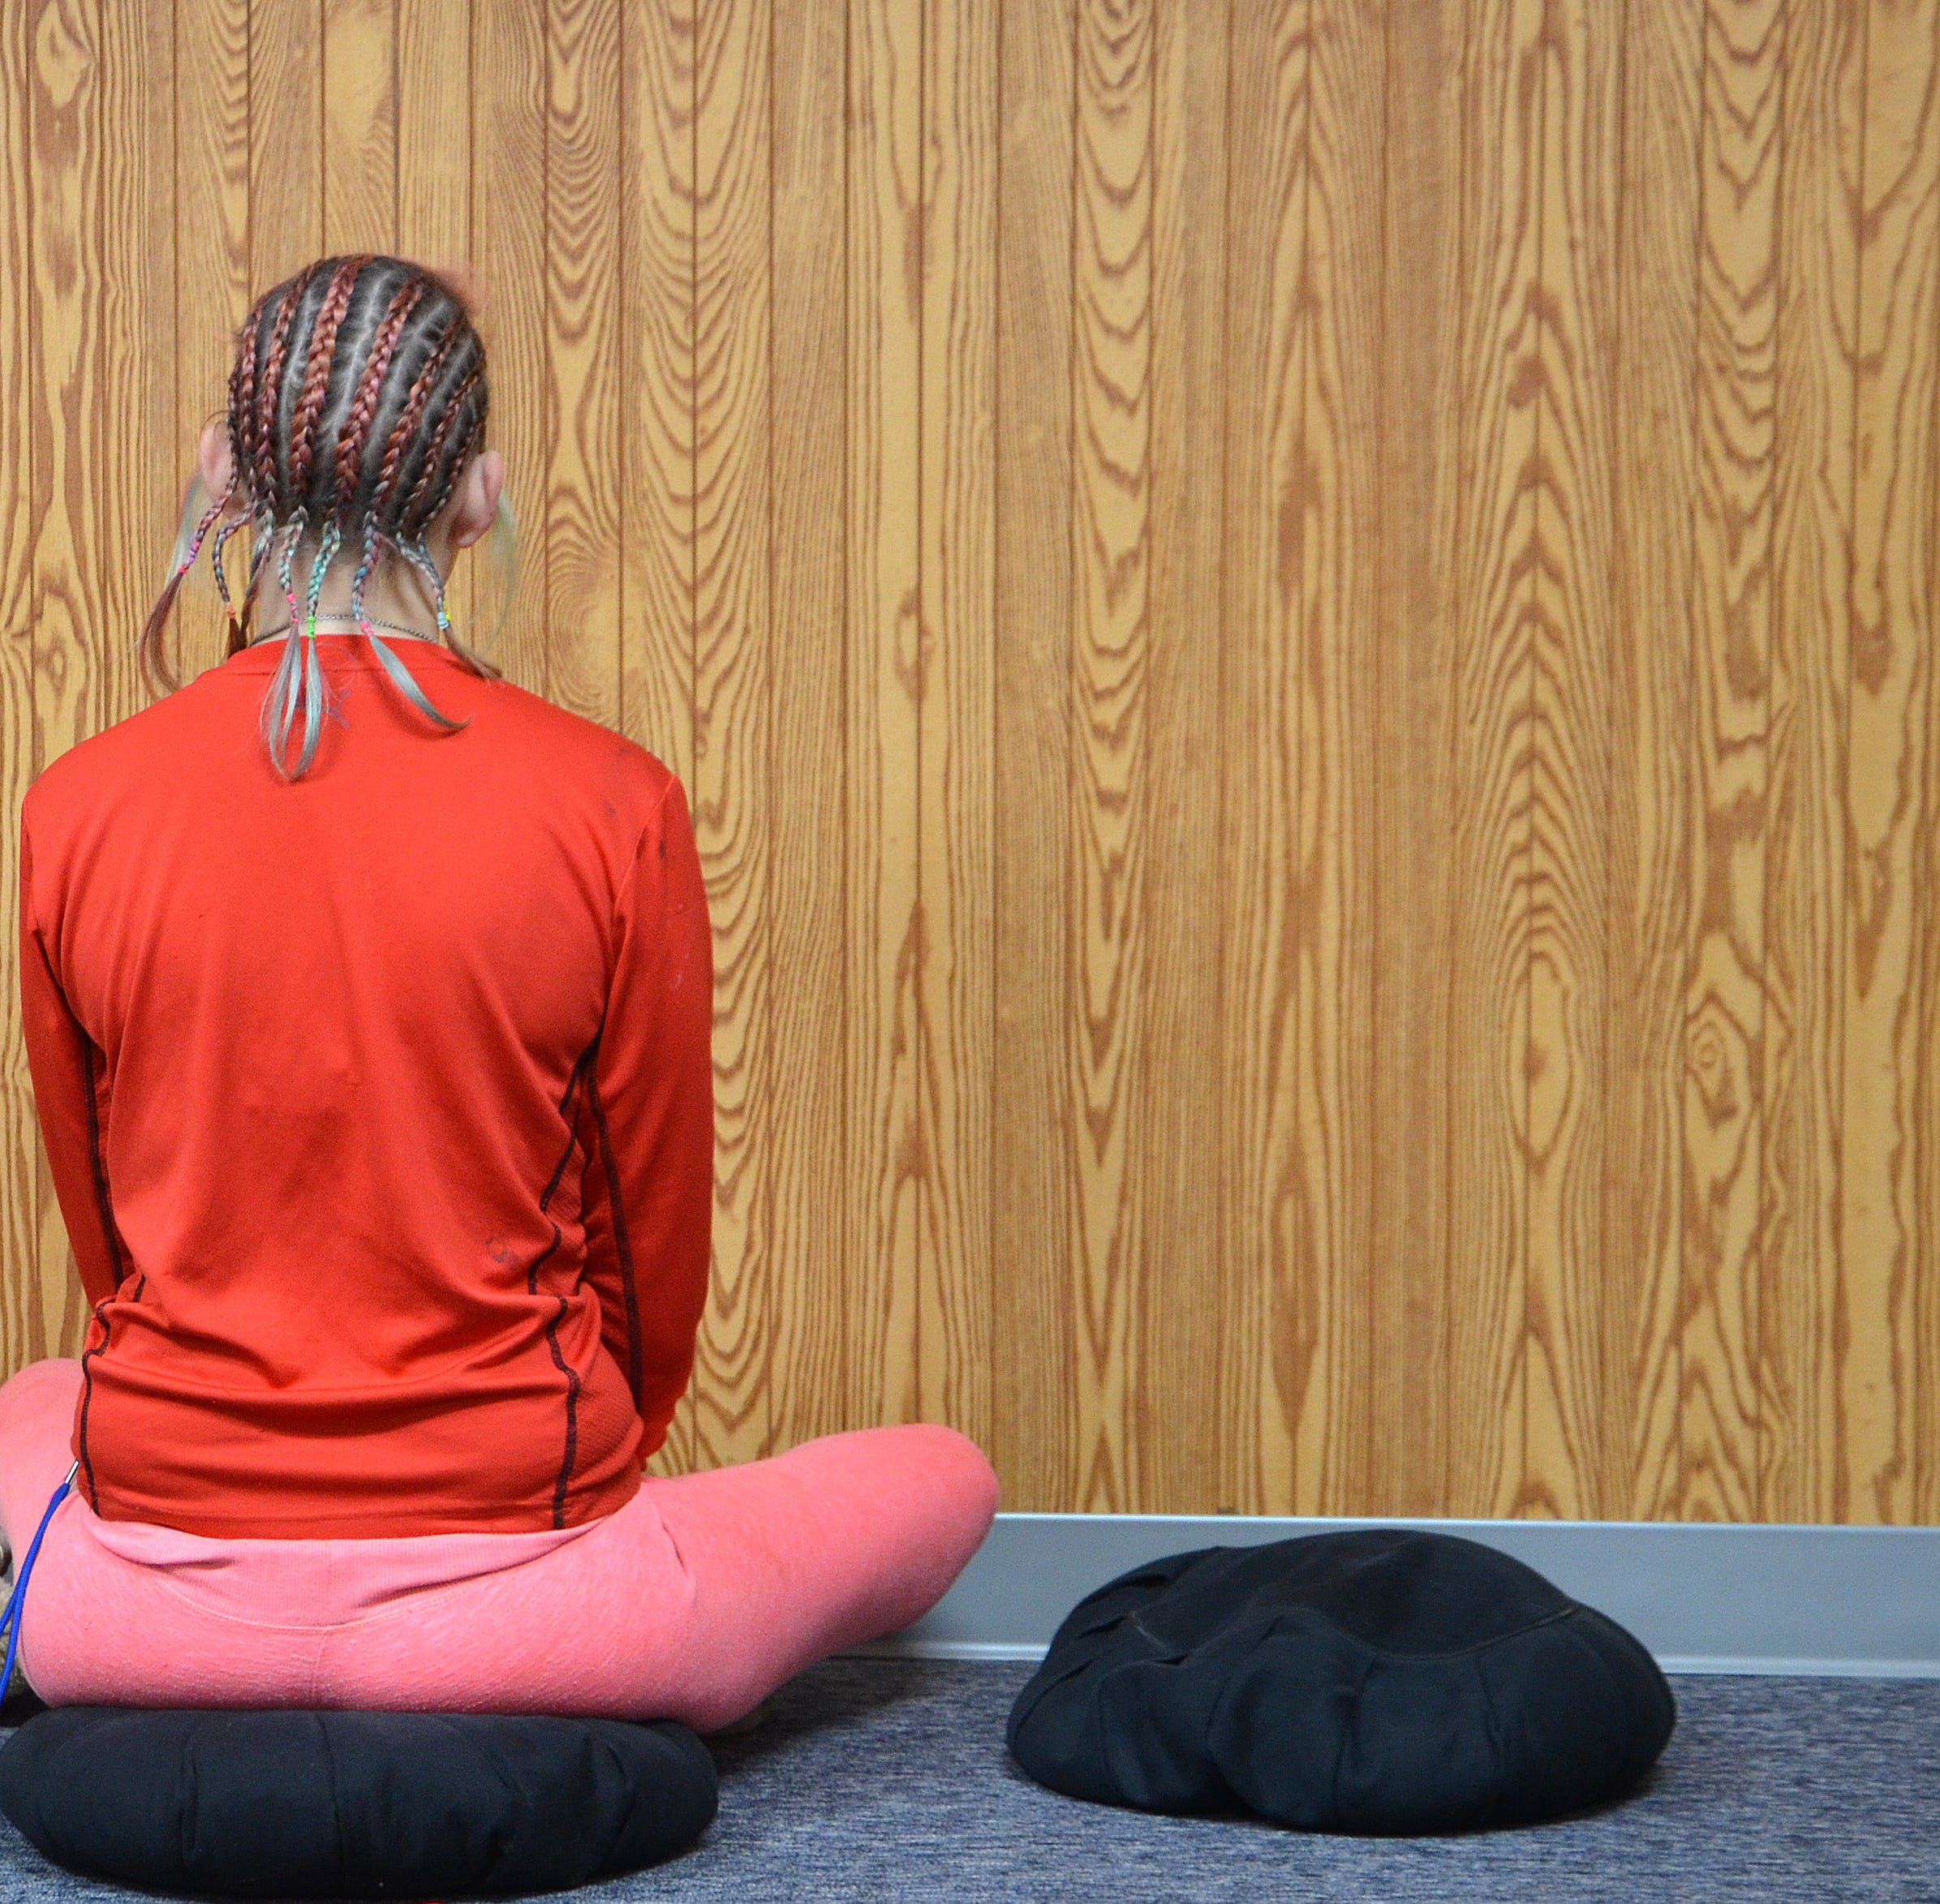 Battle Creek's Buddhist monastery is taking meditation into rehab centers and prisons